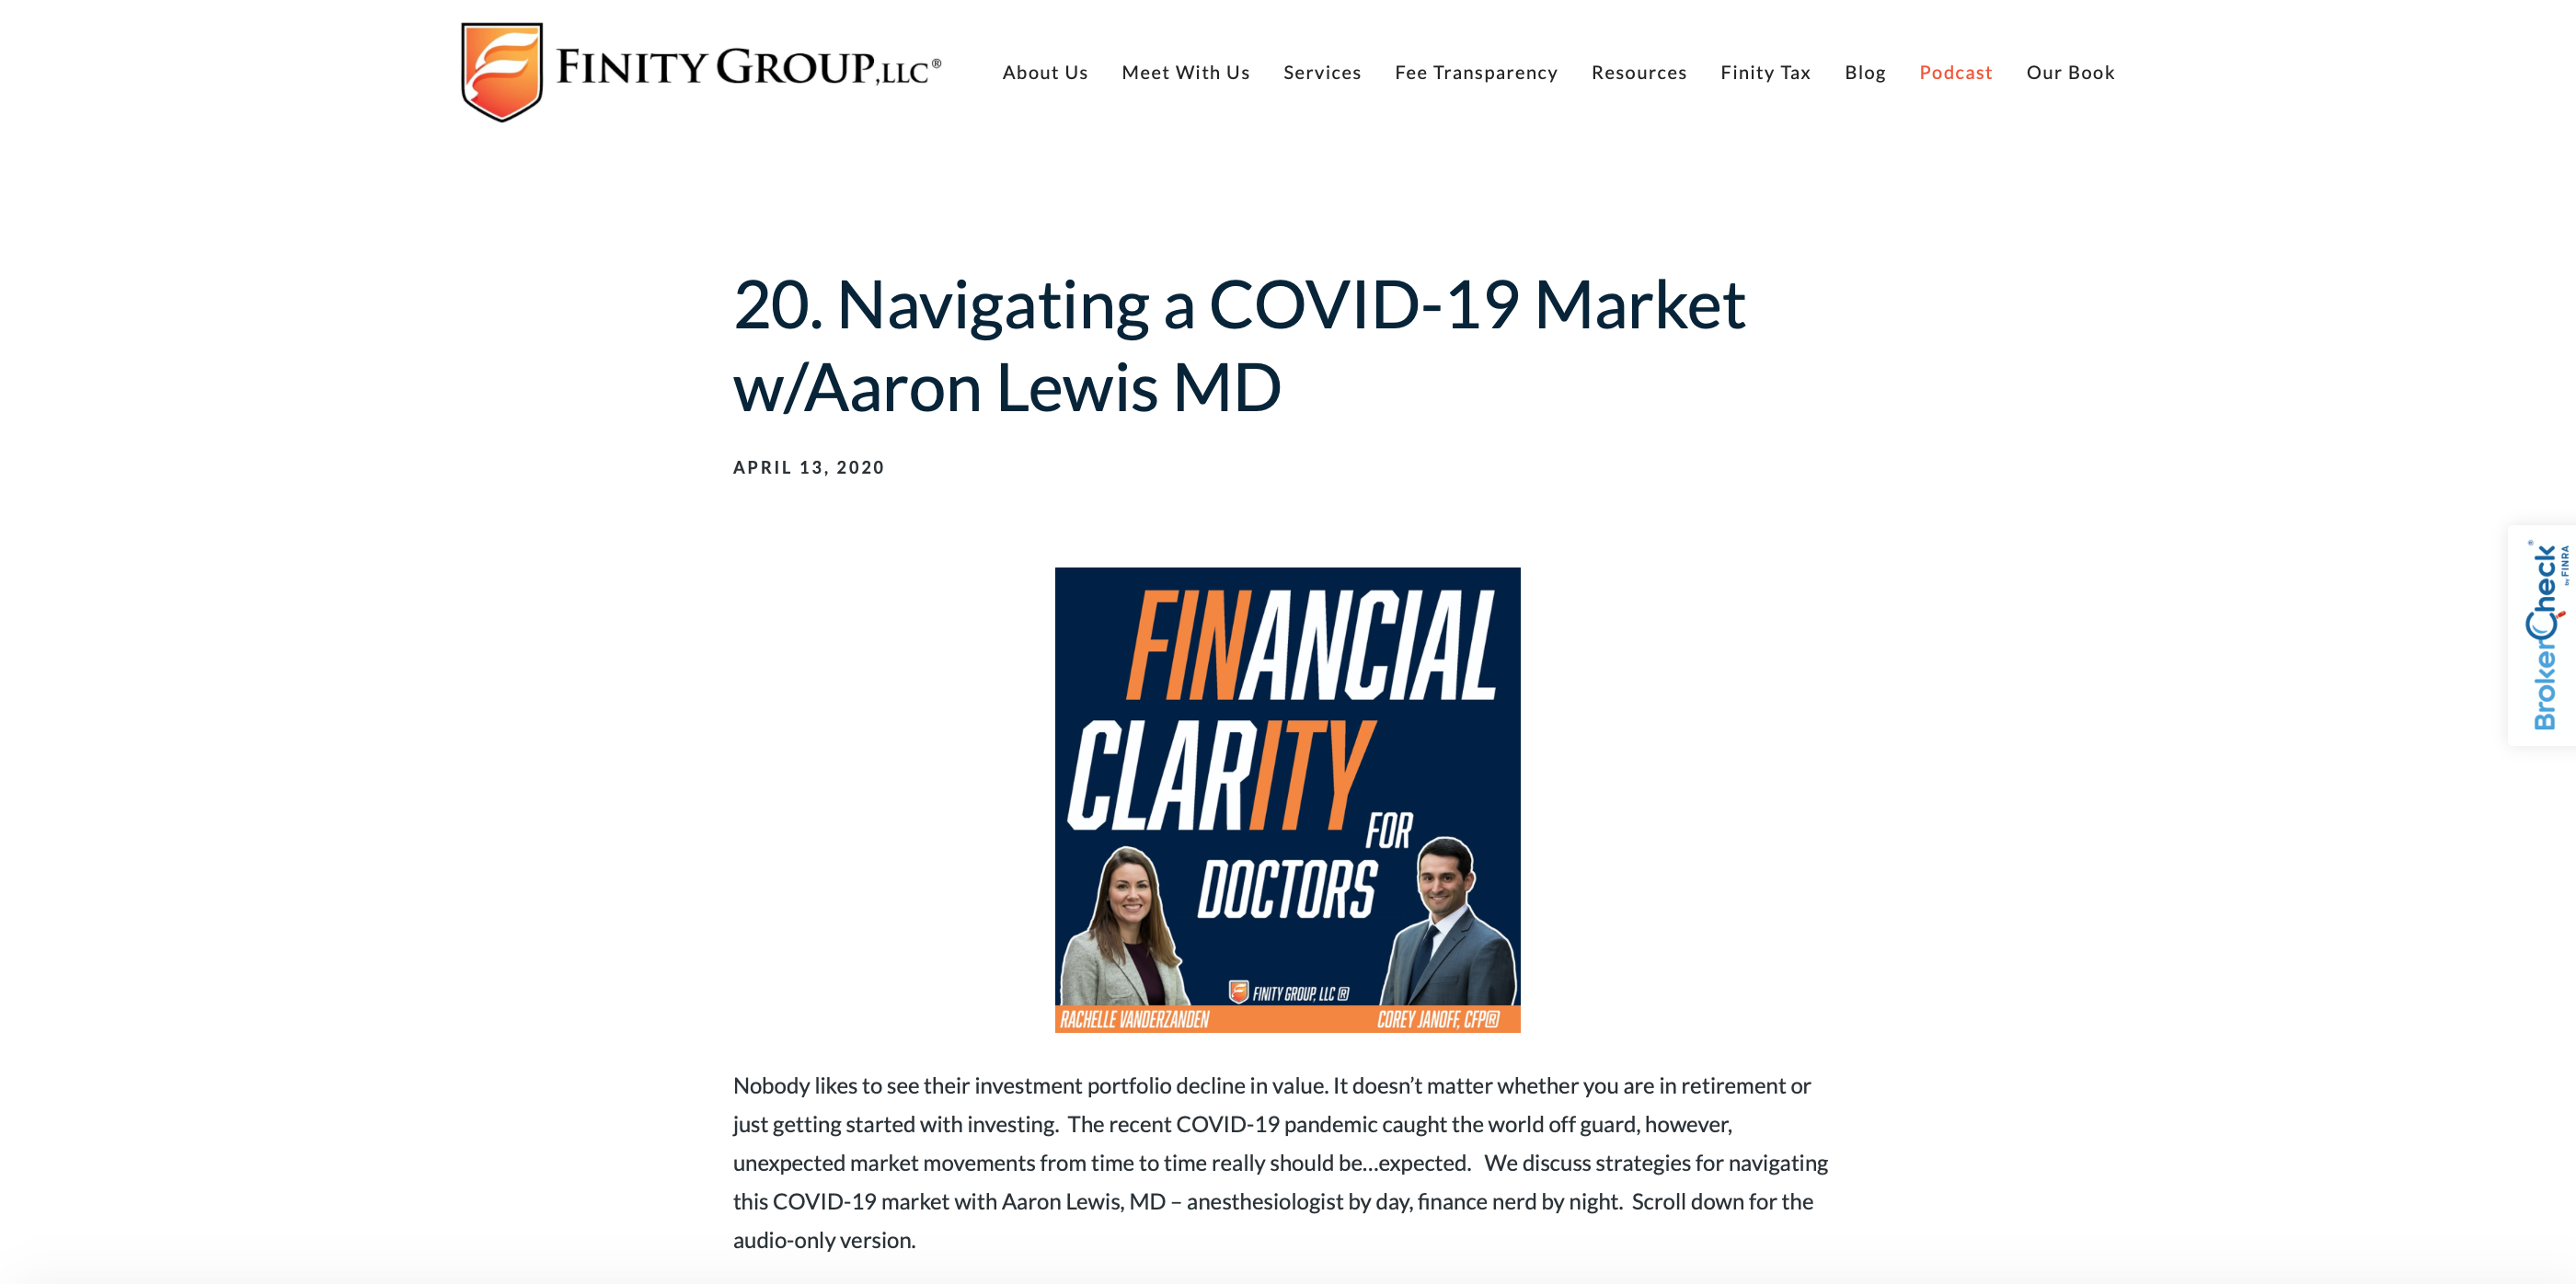 Finity Group LLC example of stock market summary for physicians